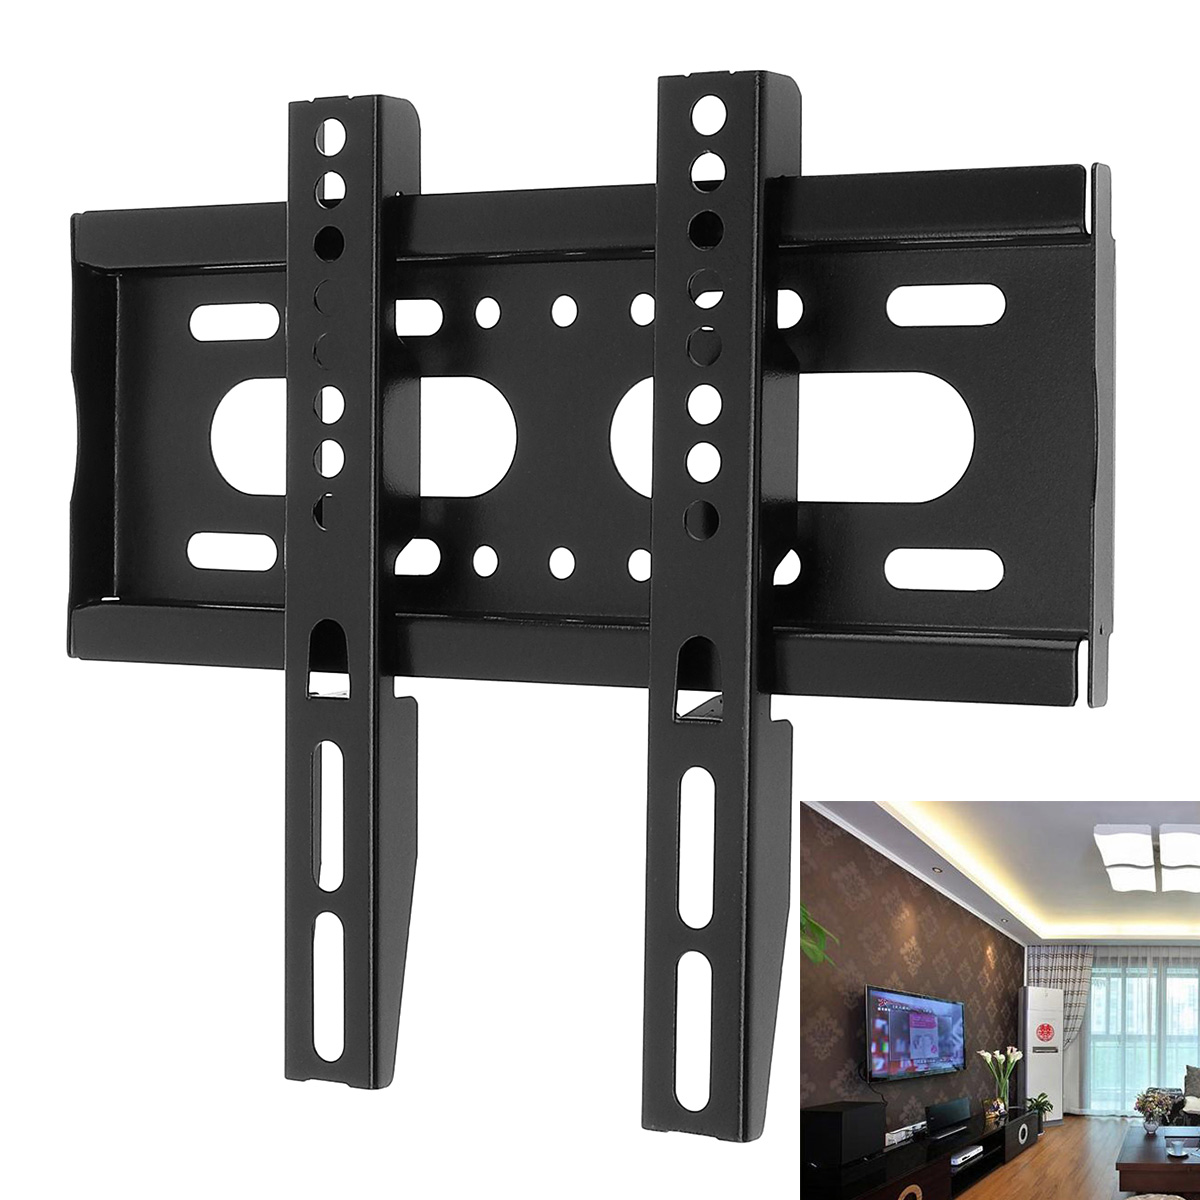 Universal 25KG TV Wall Mount Bracket Fixed Flat Panel TV Frame with Mounting Accessories Set Fit for 14-42 Inch LCD LED Monitor